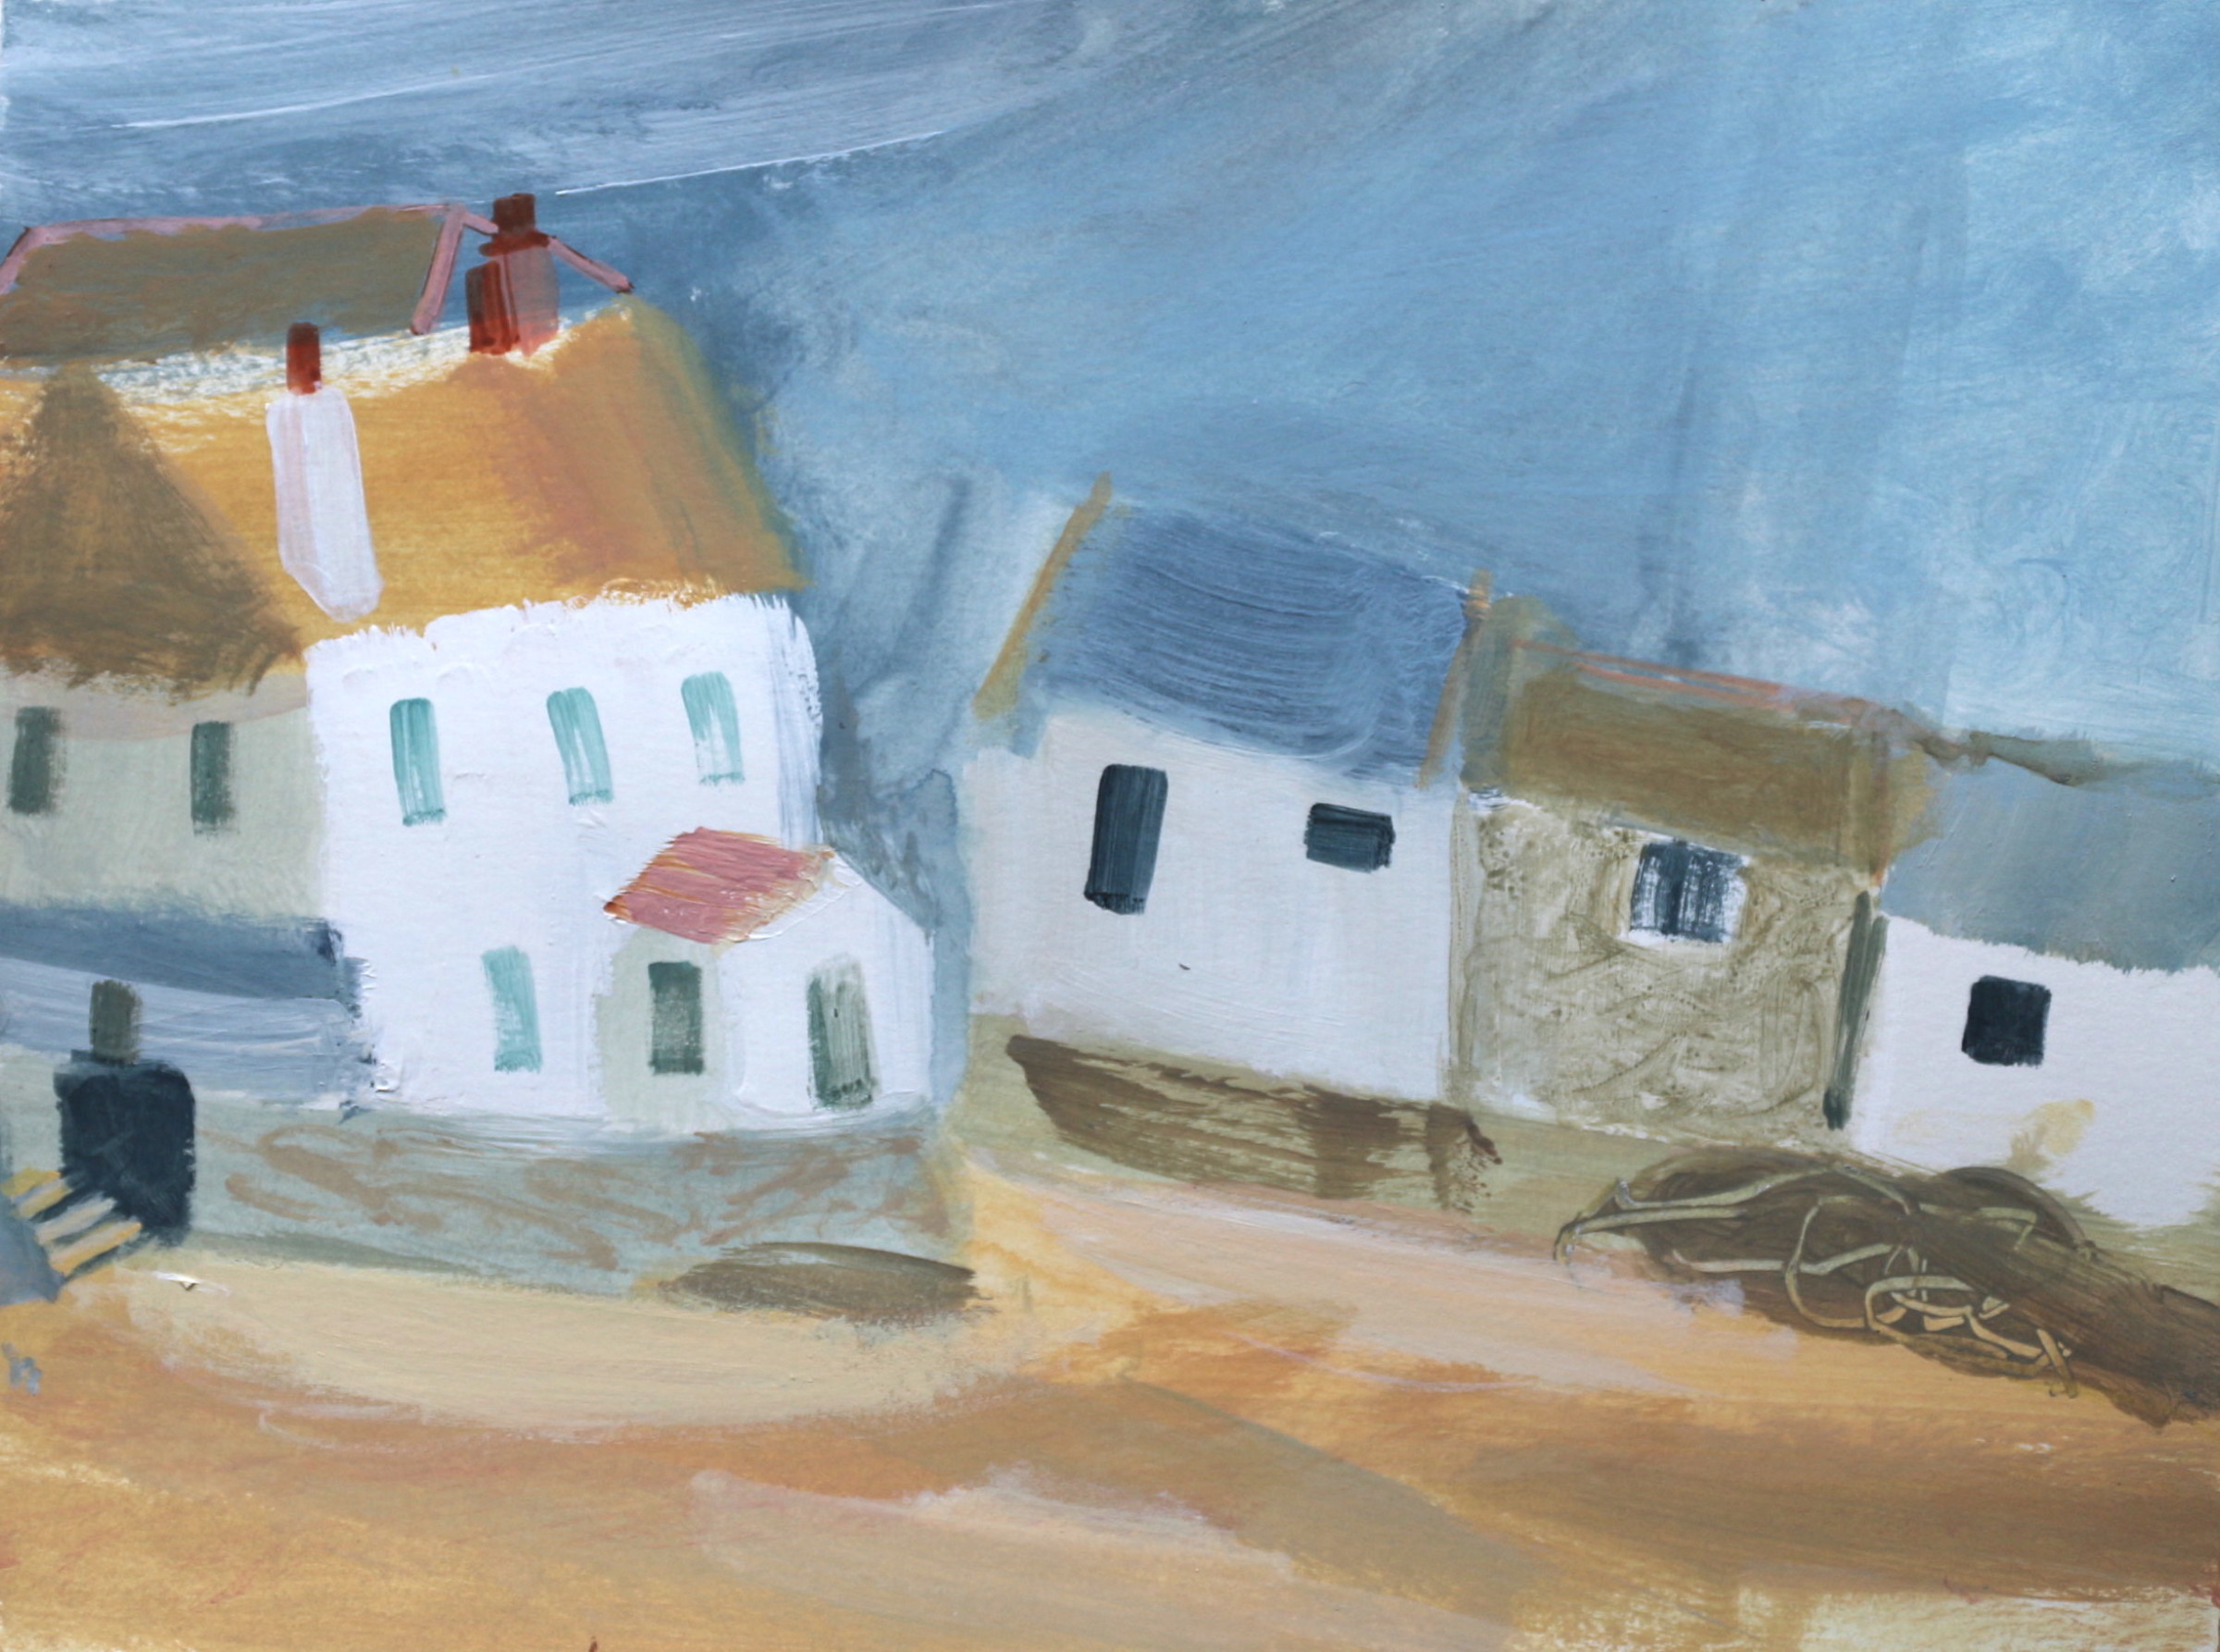 <span class=&#34;link fancybox-details-link&#34;><a href=&#34;/artists/177-jane-askey/works/5518-jane-askey-st-ives-harbour-beach-houses-2018/&#34;>View Detail Page</a></span><div class=&#34;artist&#34;><strong>Jane Askey</strong></div> <div class=&#34;title&#34;><em>St Ives Harbour Beach Houses</em>, 2018</div> <div class=&#34;signed_and_dated&#34;>signed</div> <div class=&#34;medium&#34;>mixed media on paper</div> <div class=&#34;dimensions&#34;>38 x 45 cm<br /> 15 x 17 3/4 inches</div><div class=&#34;copyright_line&#34;>OwnArt: £ 40 x 10 Months, 0% APR</div>